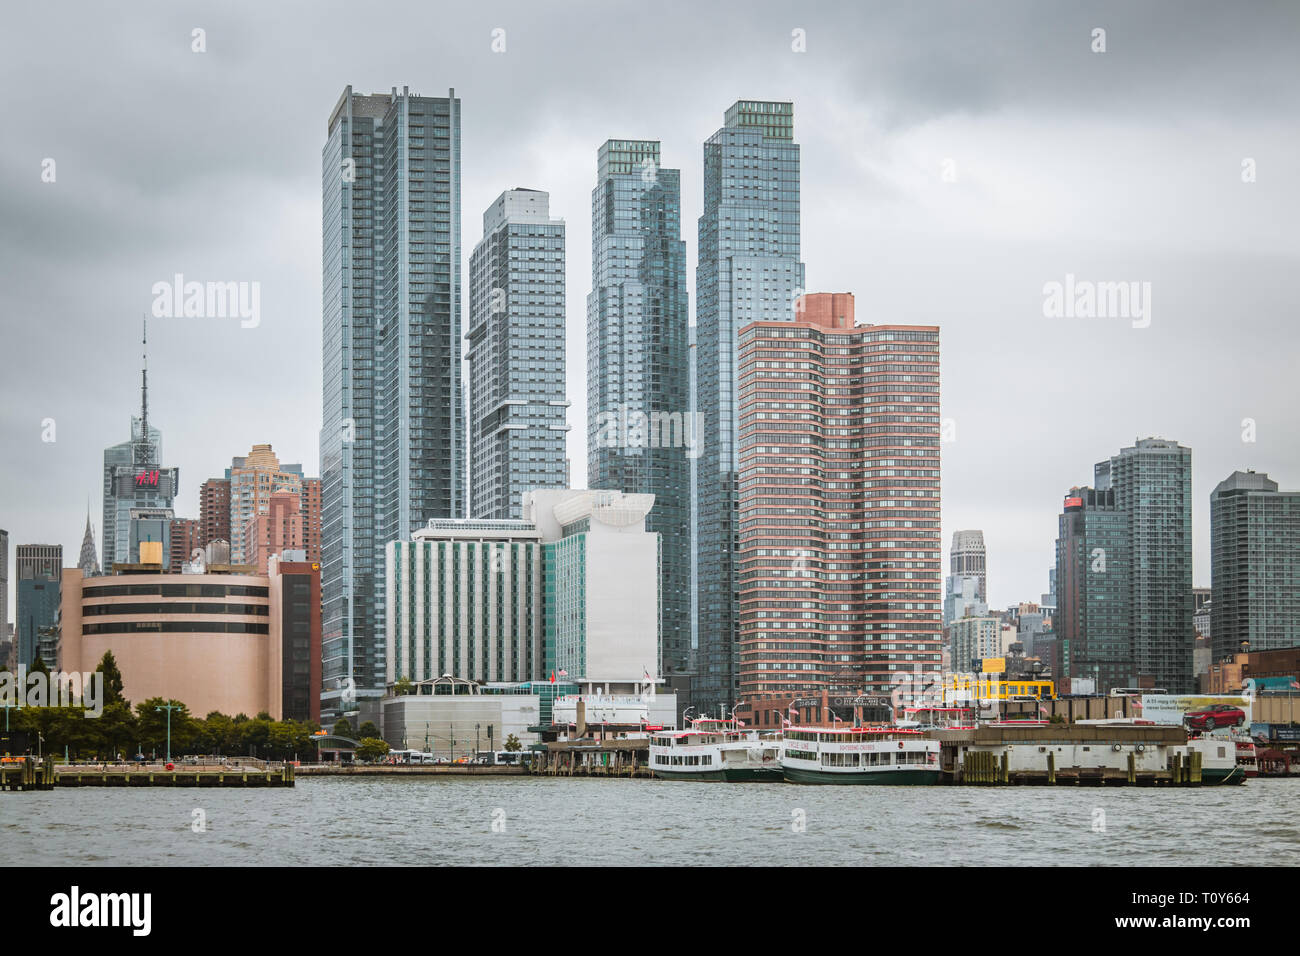 Skyscrapers cluster along the river in New York City. - Stock Image